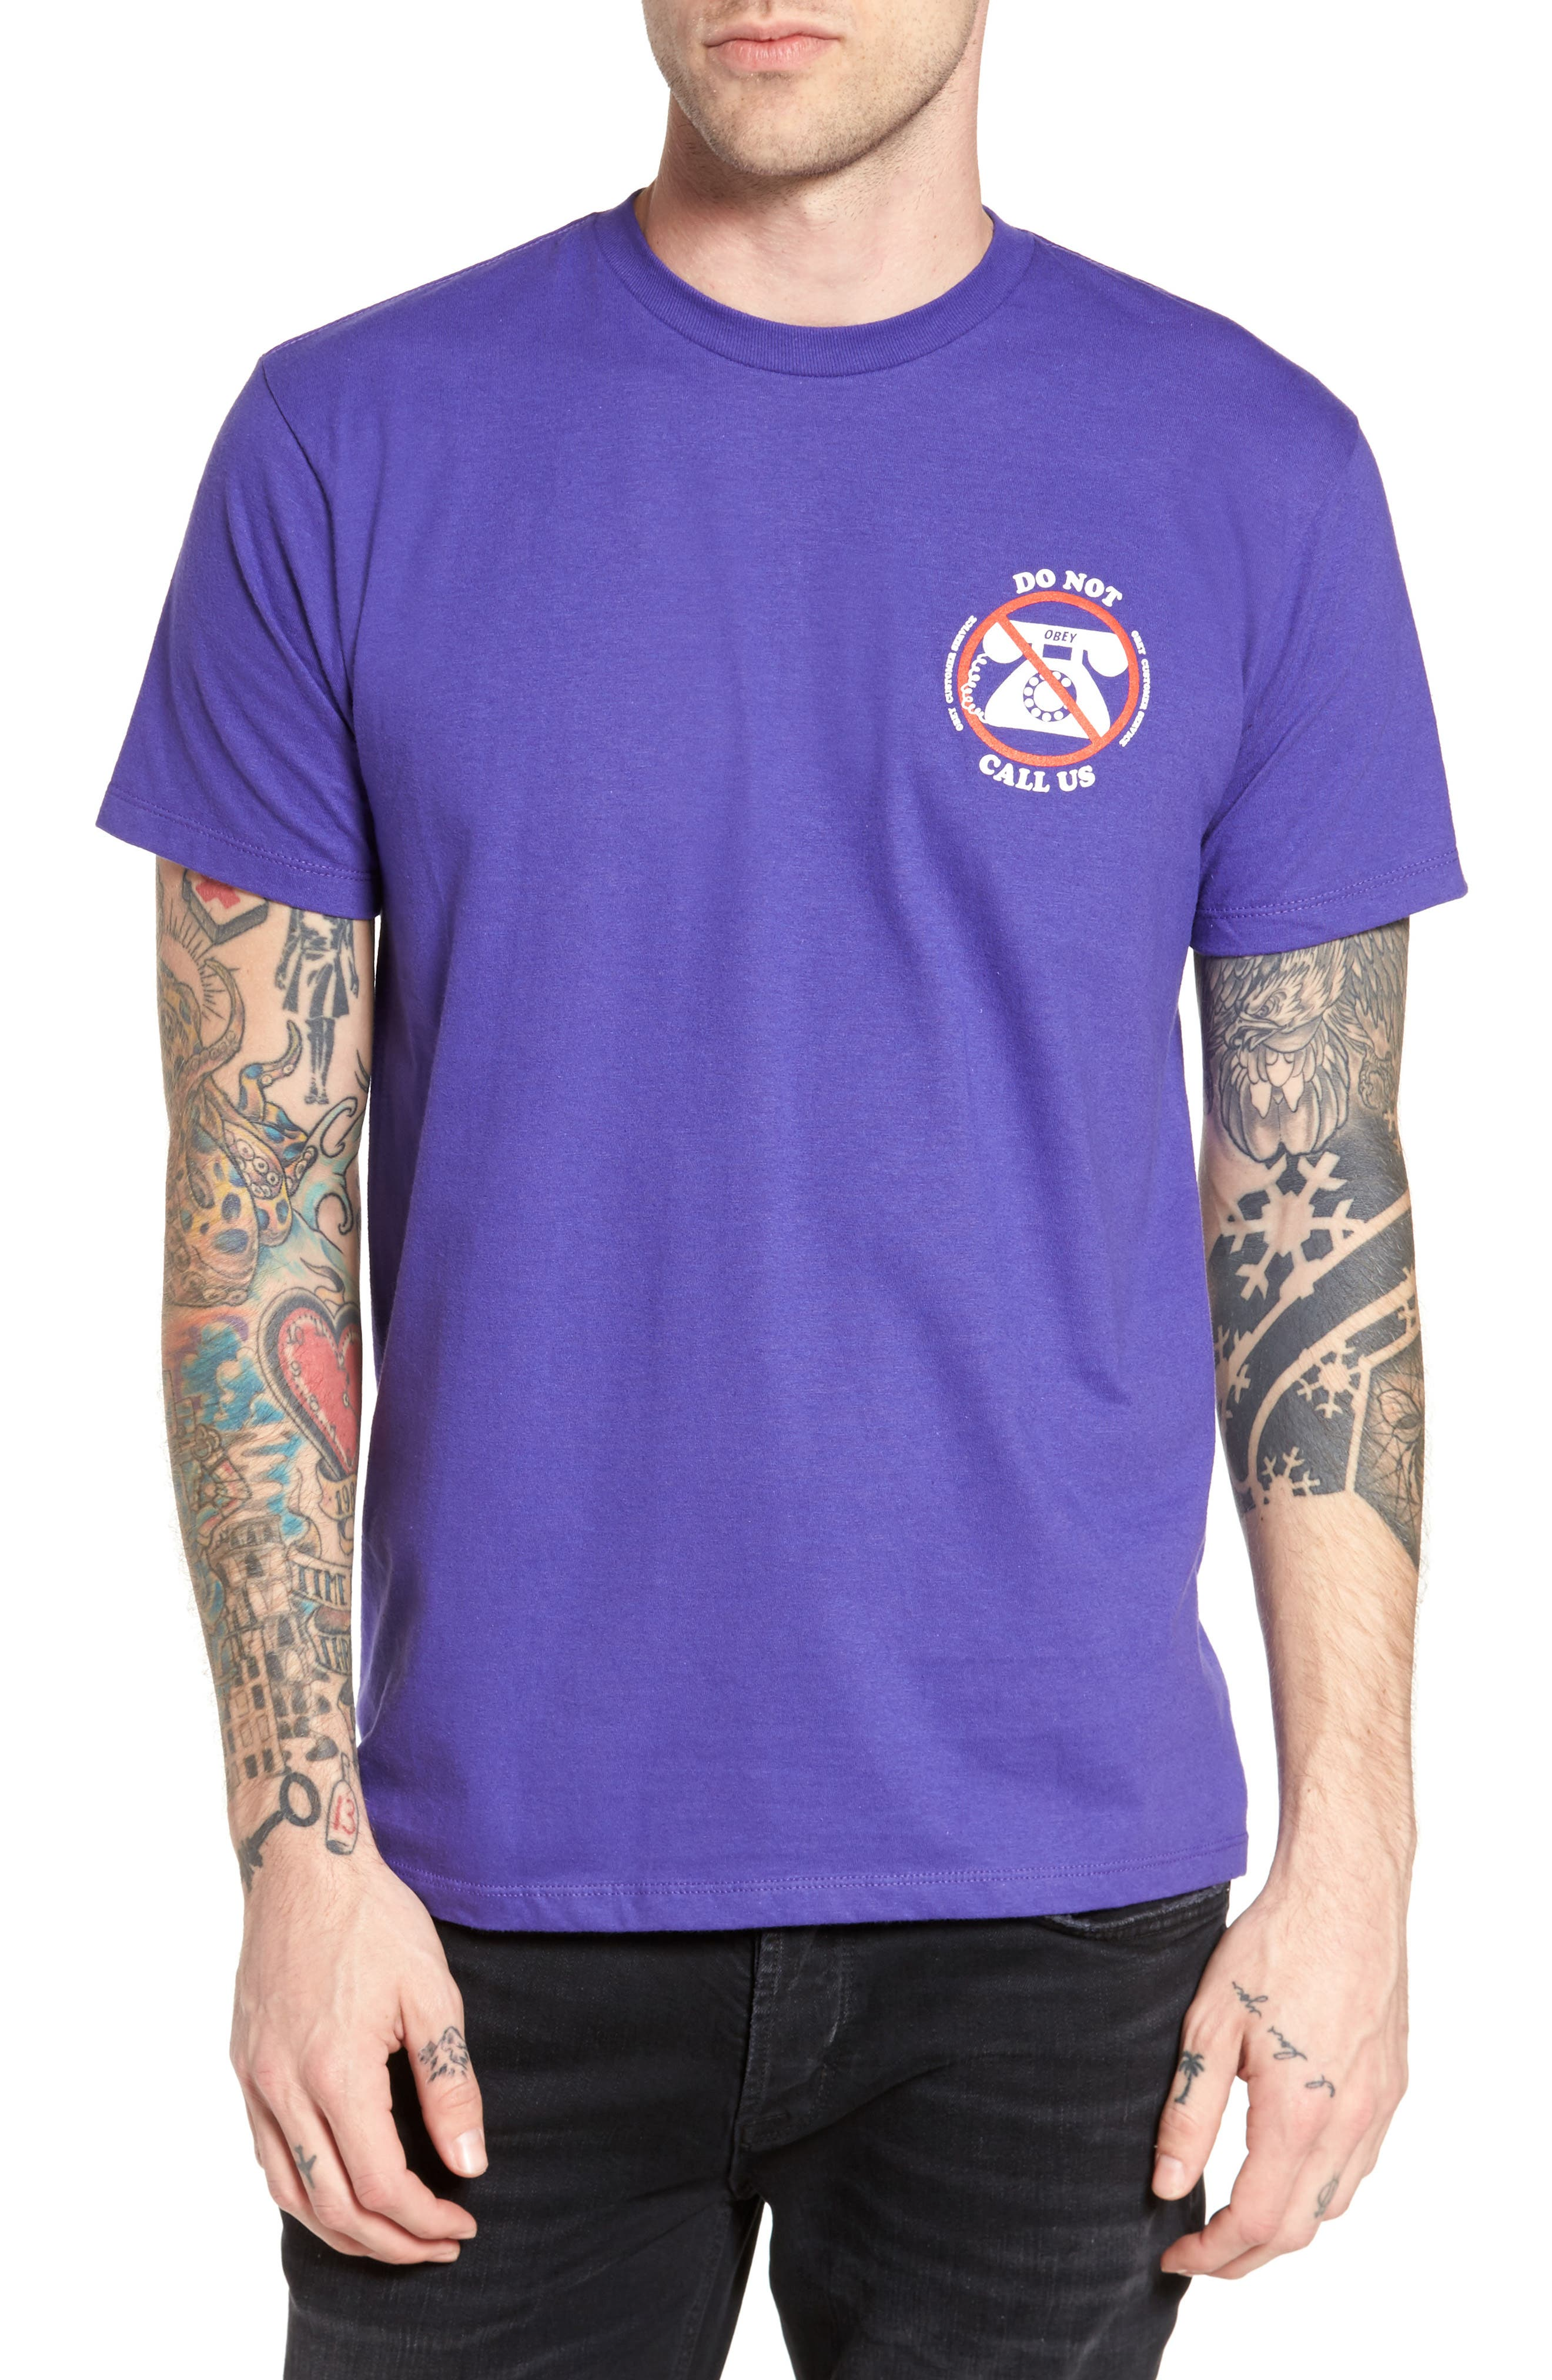 Main Image - Obey Customer Service Premium Graphic T-Shirt